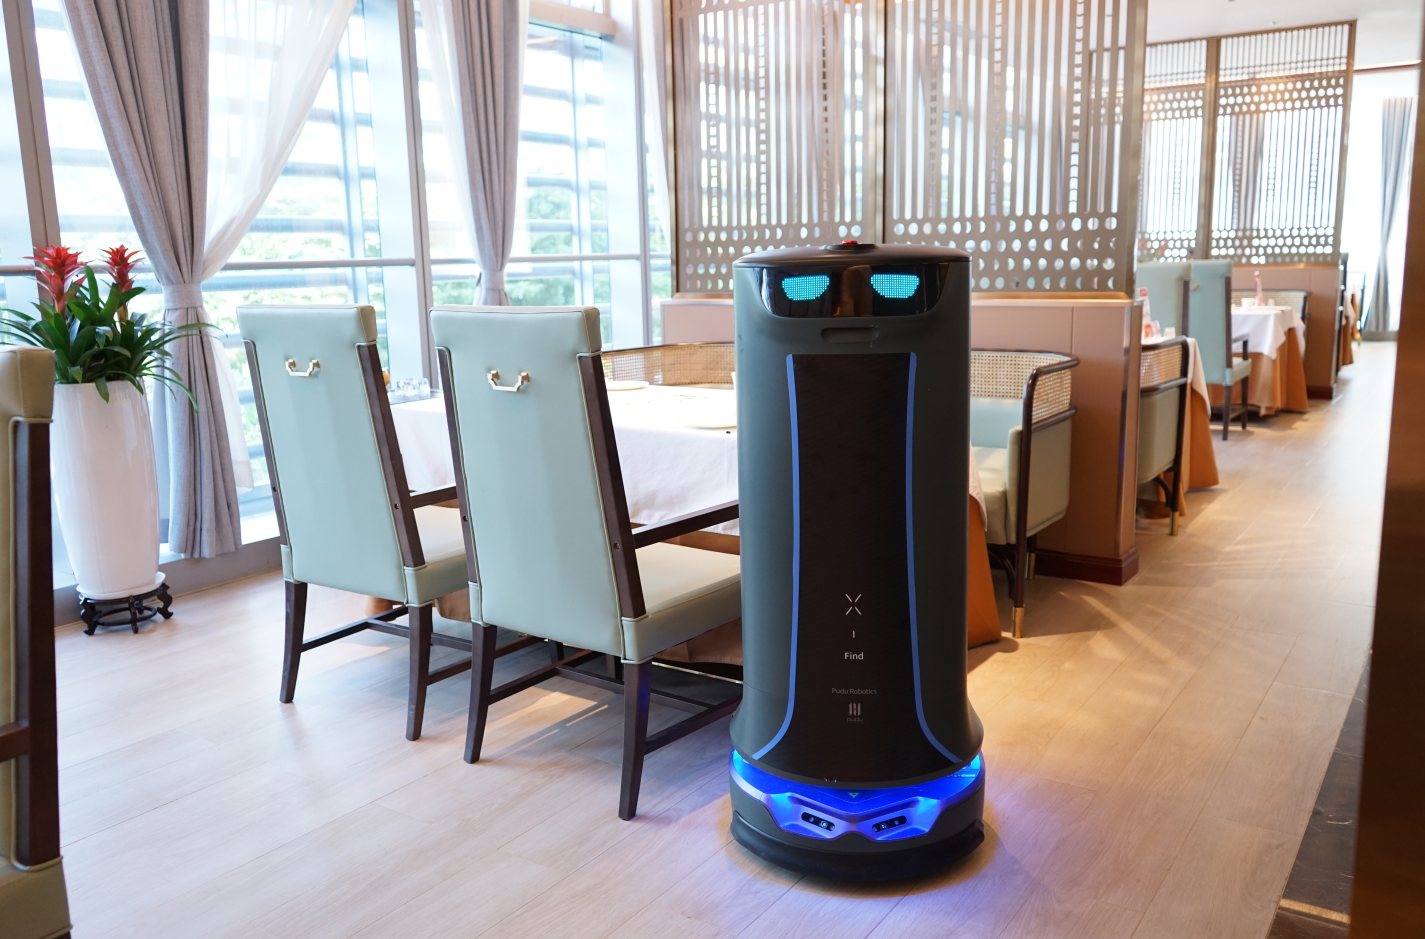 HolaBot Service Robot Delivers With LoRa®